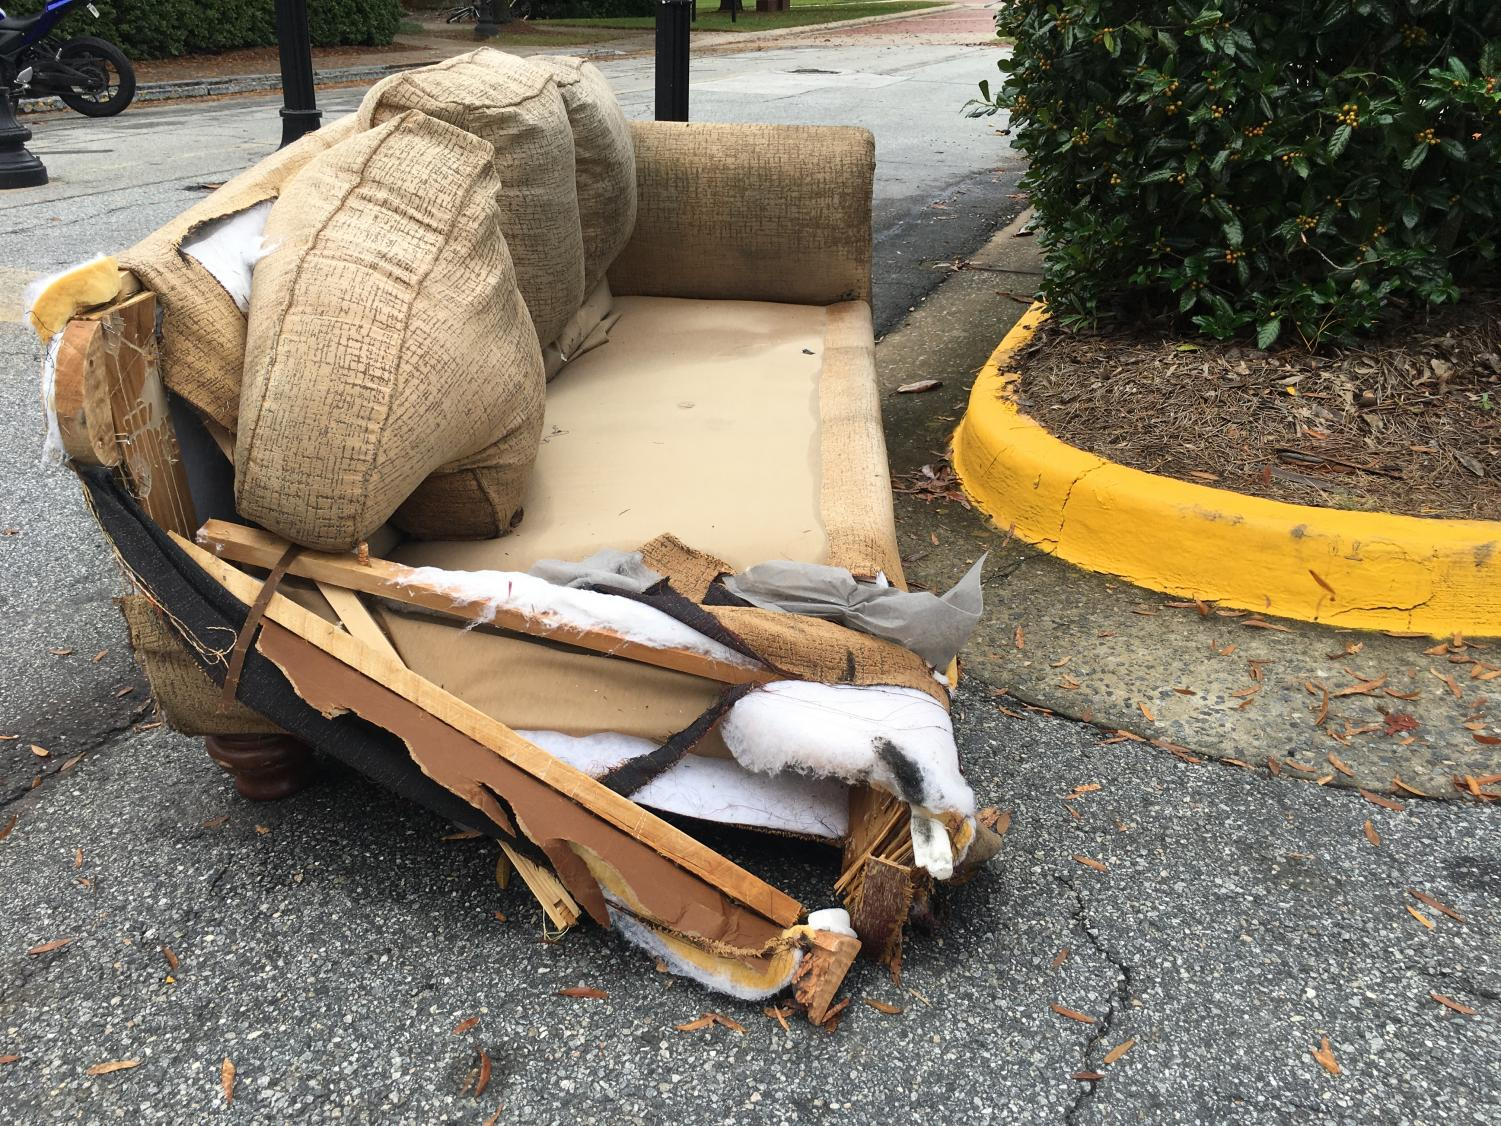 Macon-Bibb County normally charges an extra fee to pick up large items but those charges are being waived during a special Holiday Cleanup from Nov. 4 - Dec. 20.